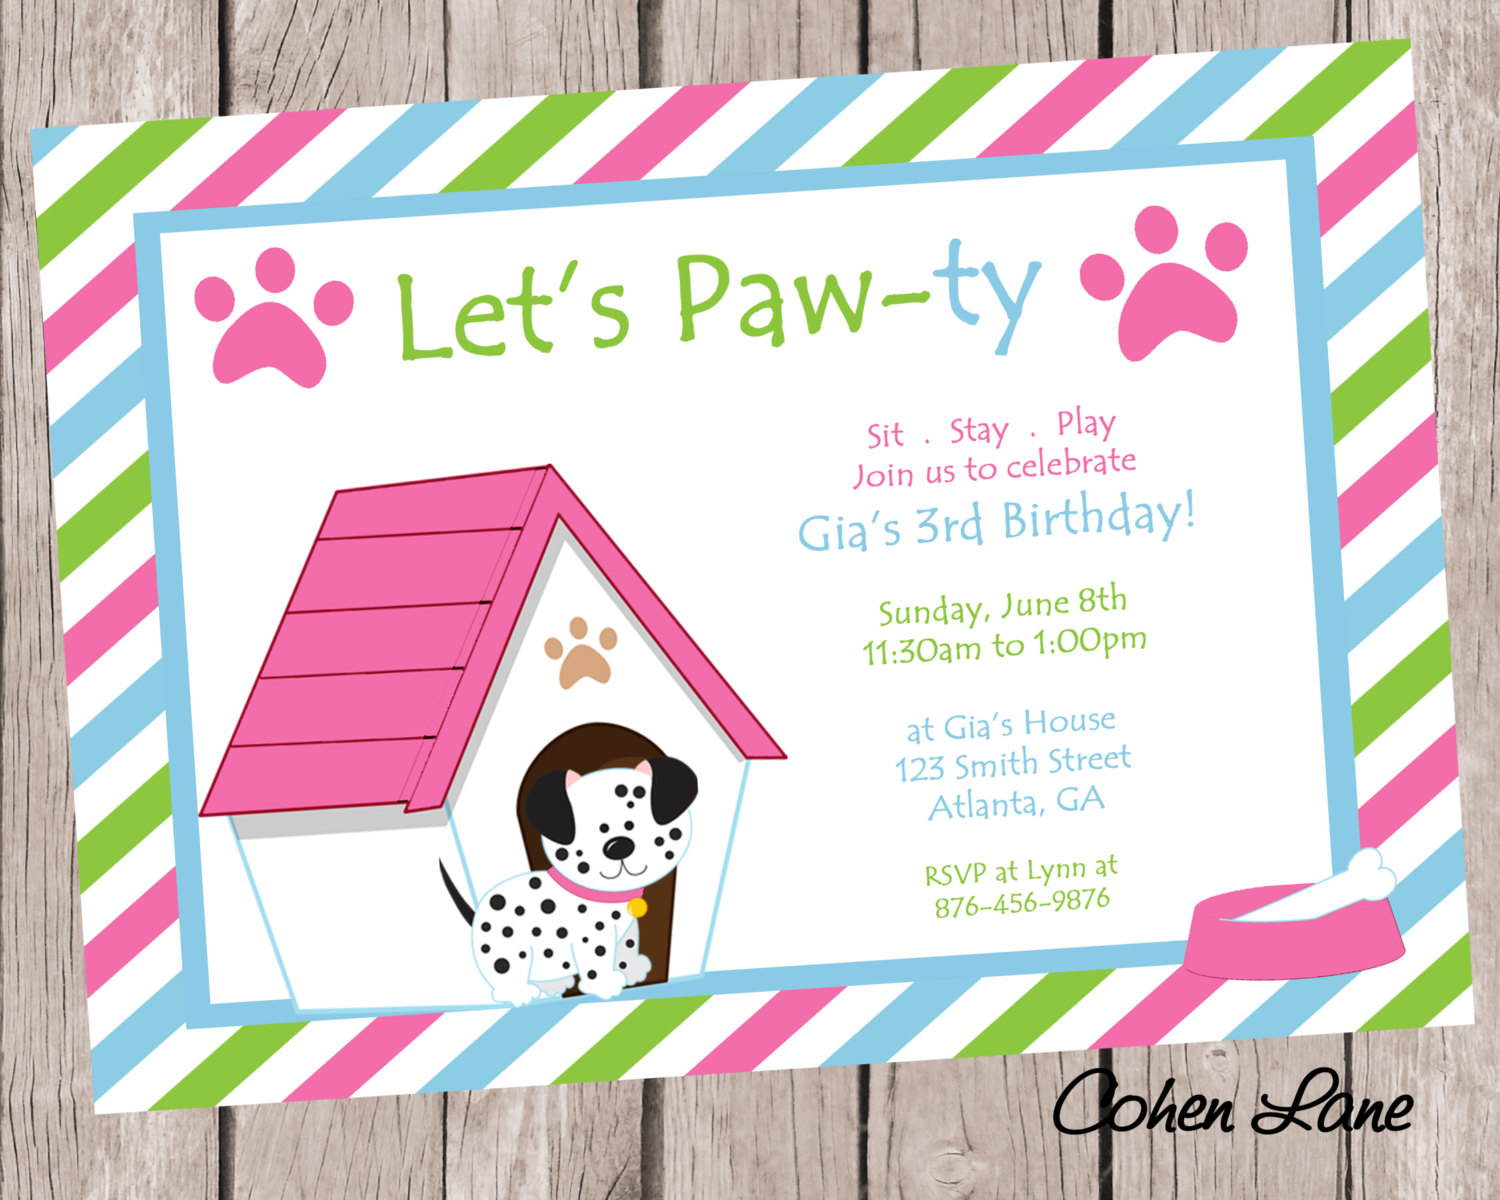 dog birthday invitations free printable ; dog-birthday-party-invitations-for-well-solutions-in-of-drop-dead-Party-Invitation-Template-10